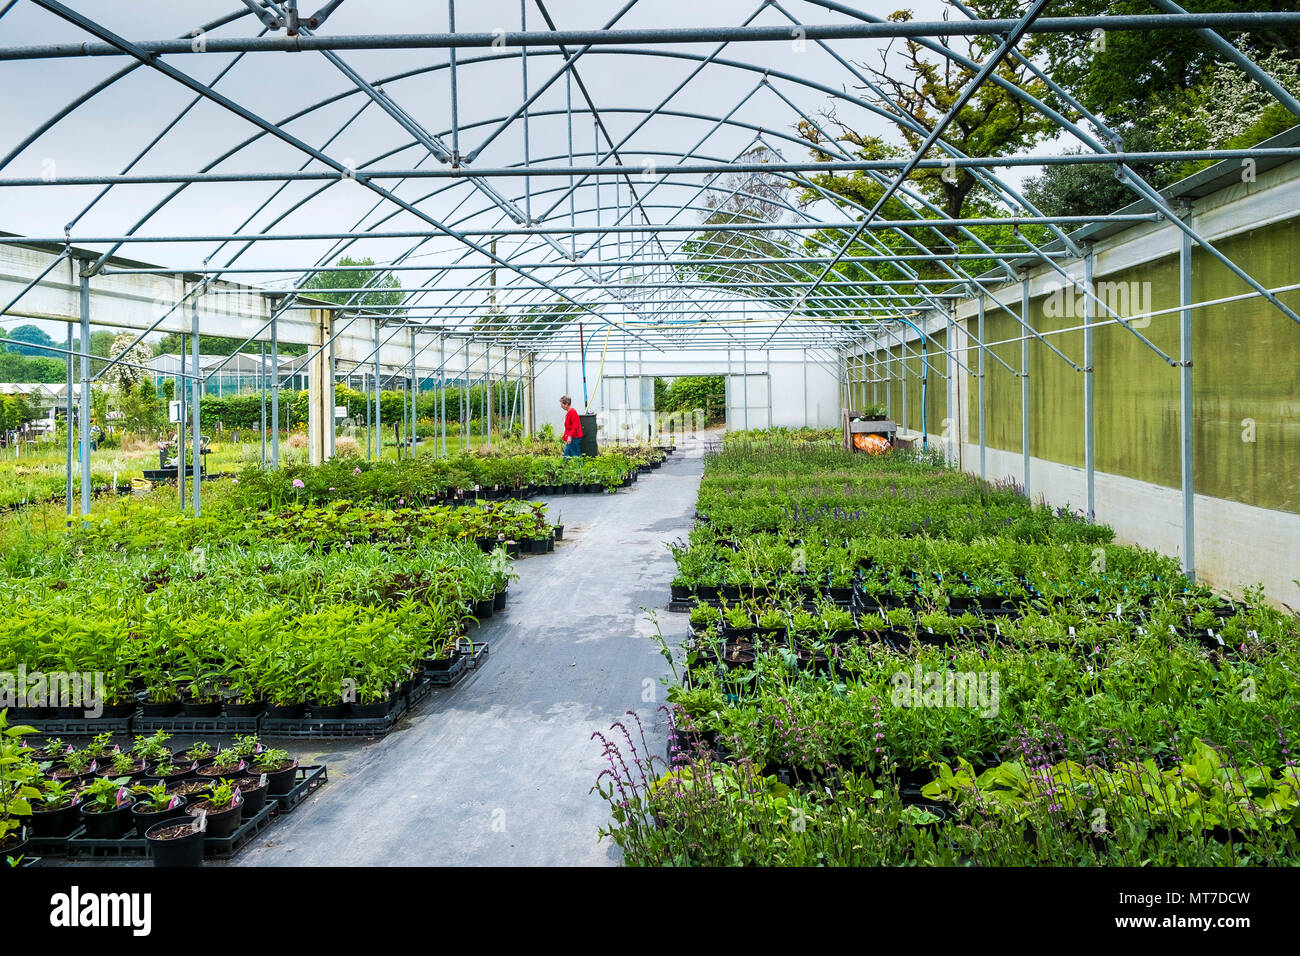 Plants for sale in a garden centre nursery. - Stock Image